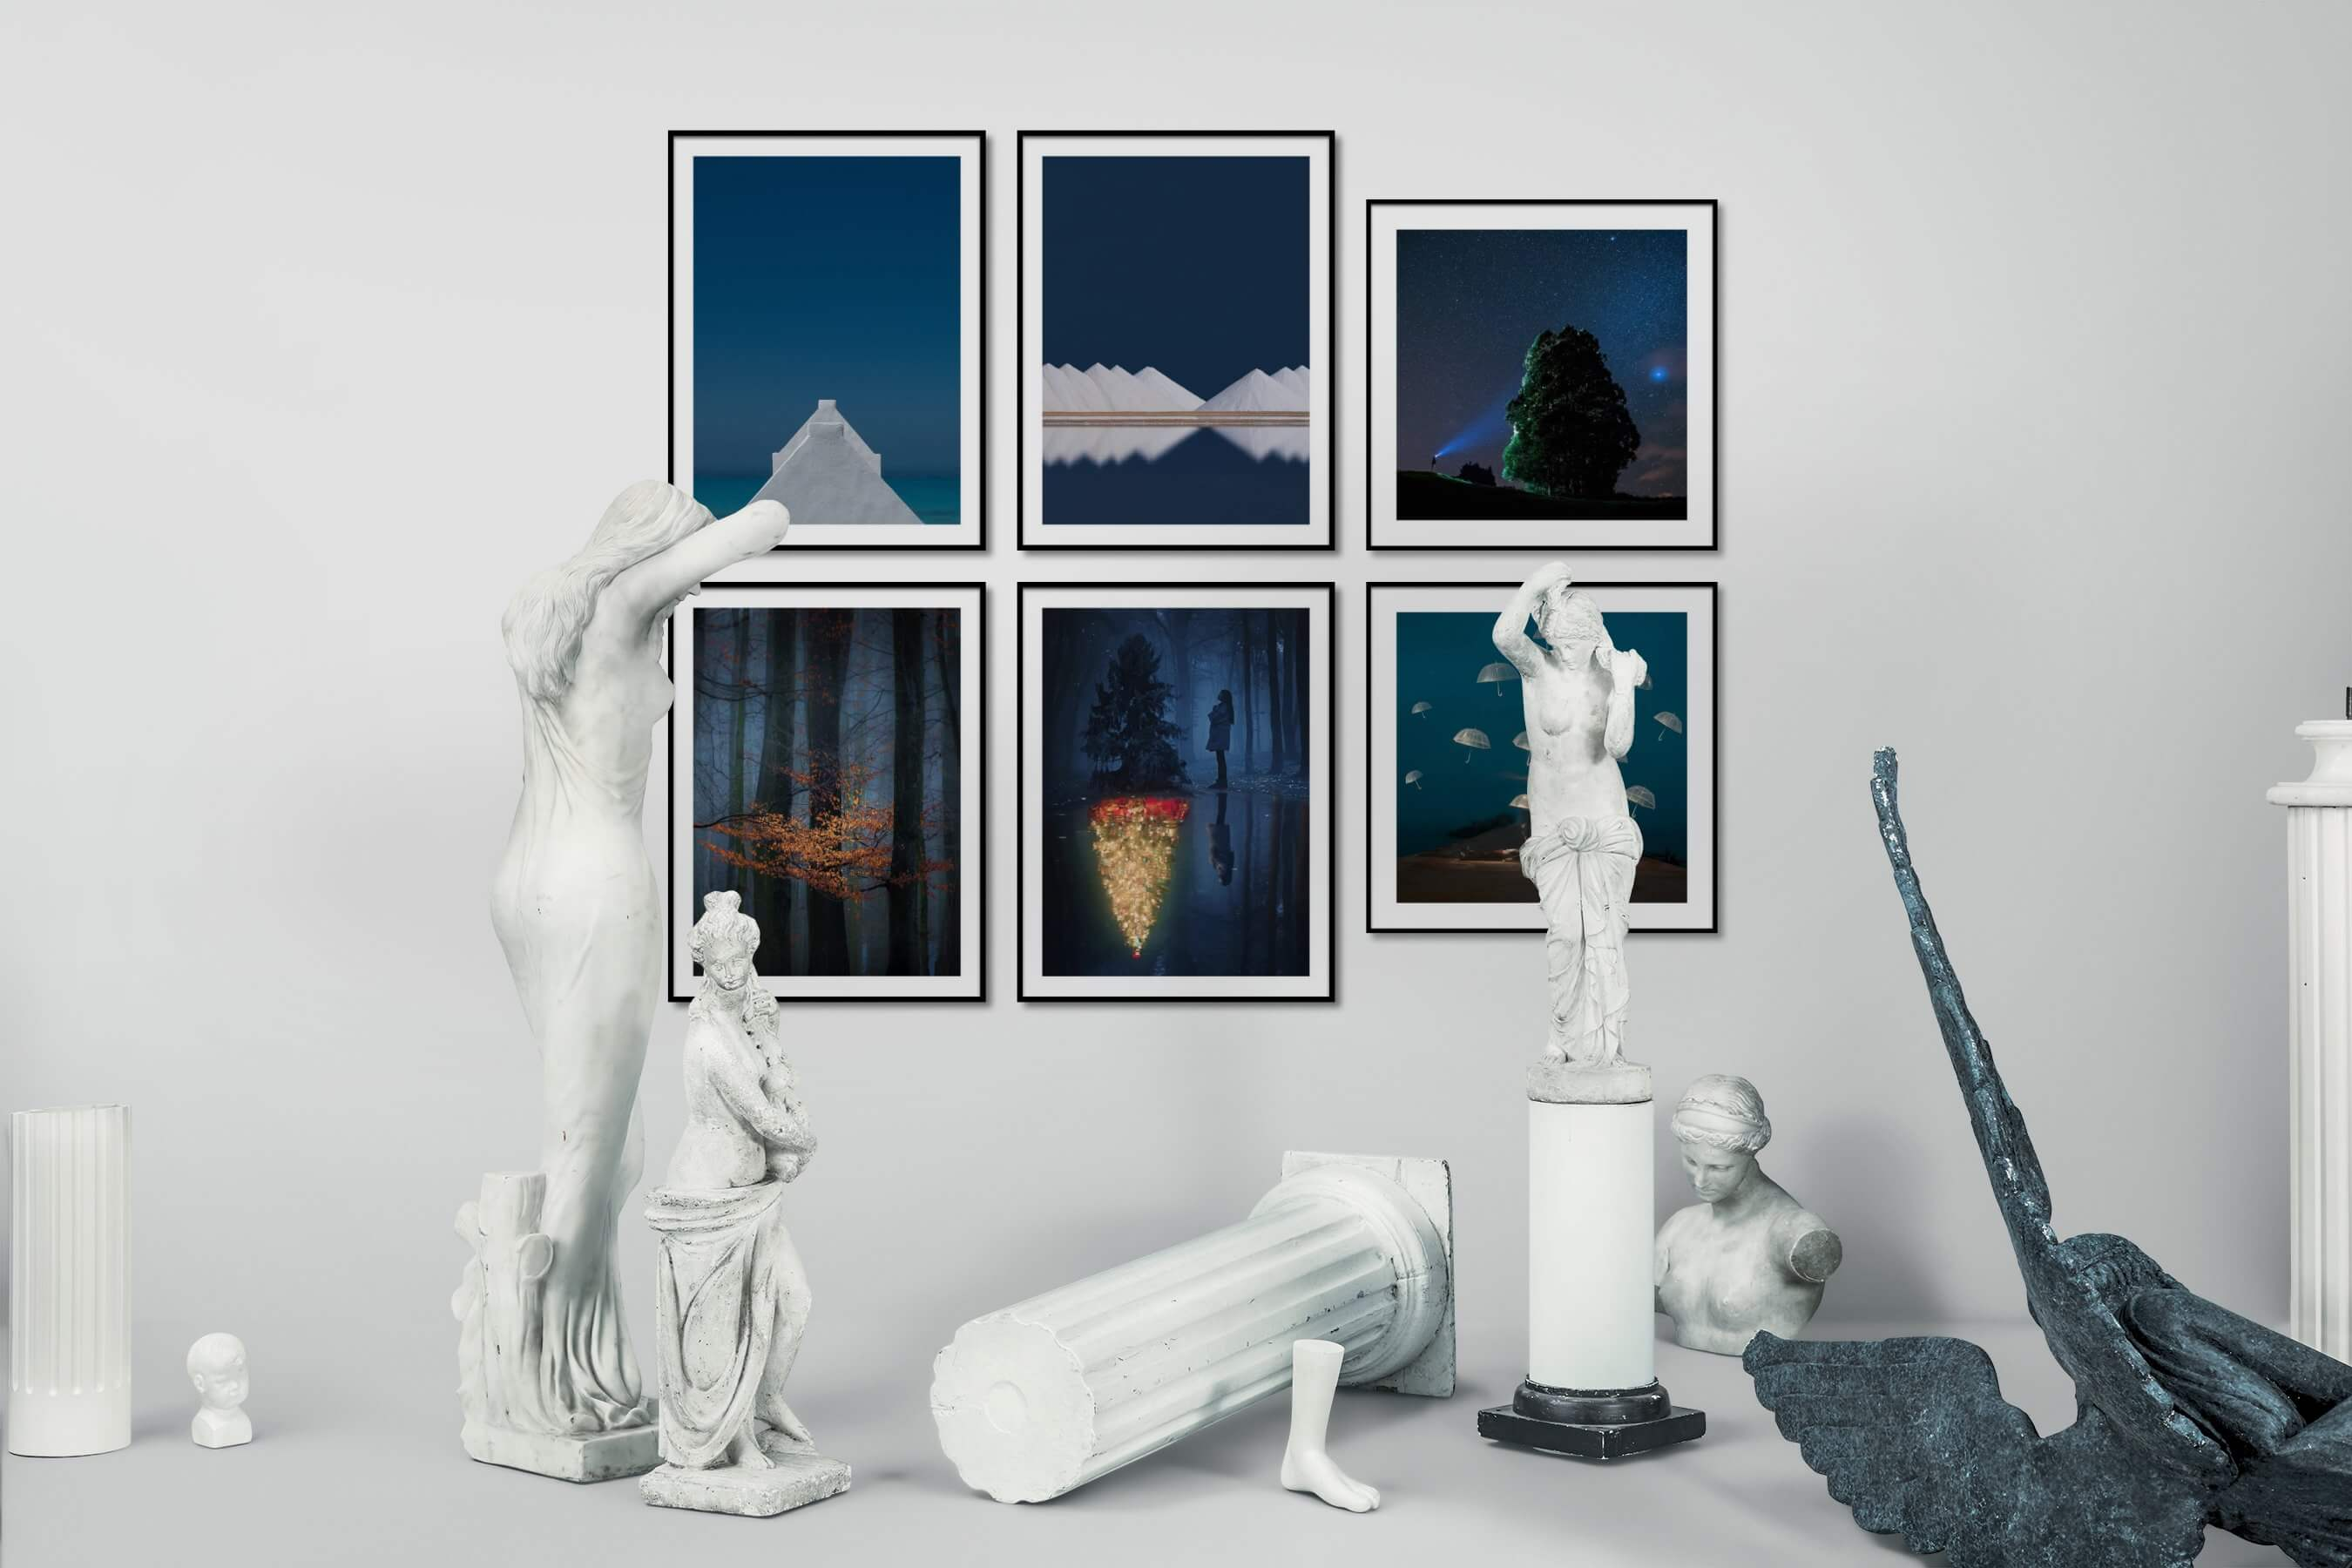 Gallery wall idea with six framed pictures arranged on a wall depicting For the Minimalist, Nature, Artsy, Country Life, For the Moderate, and Mindfulness